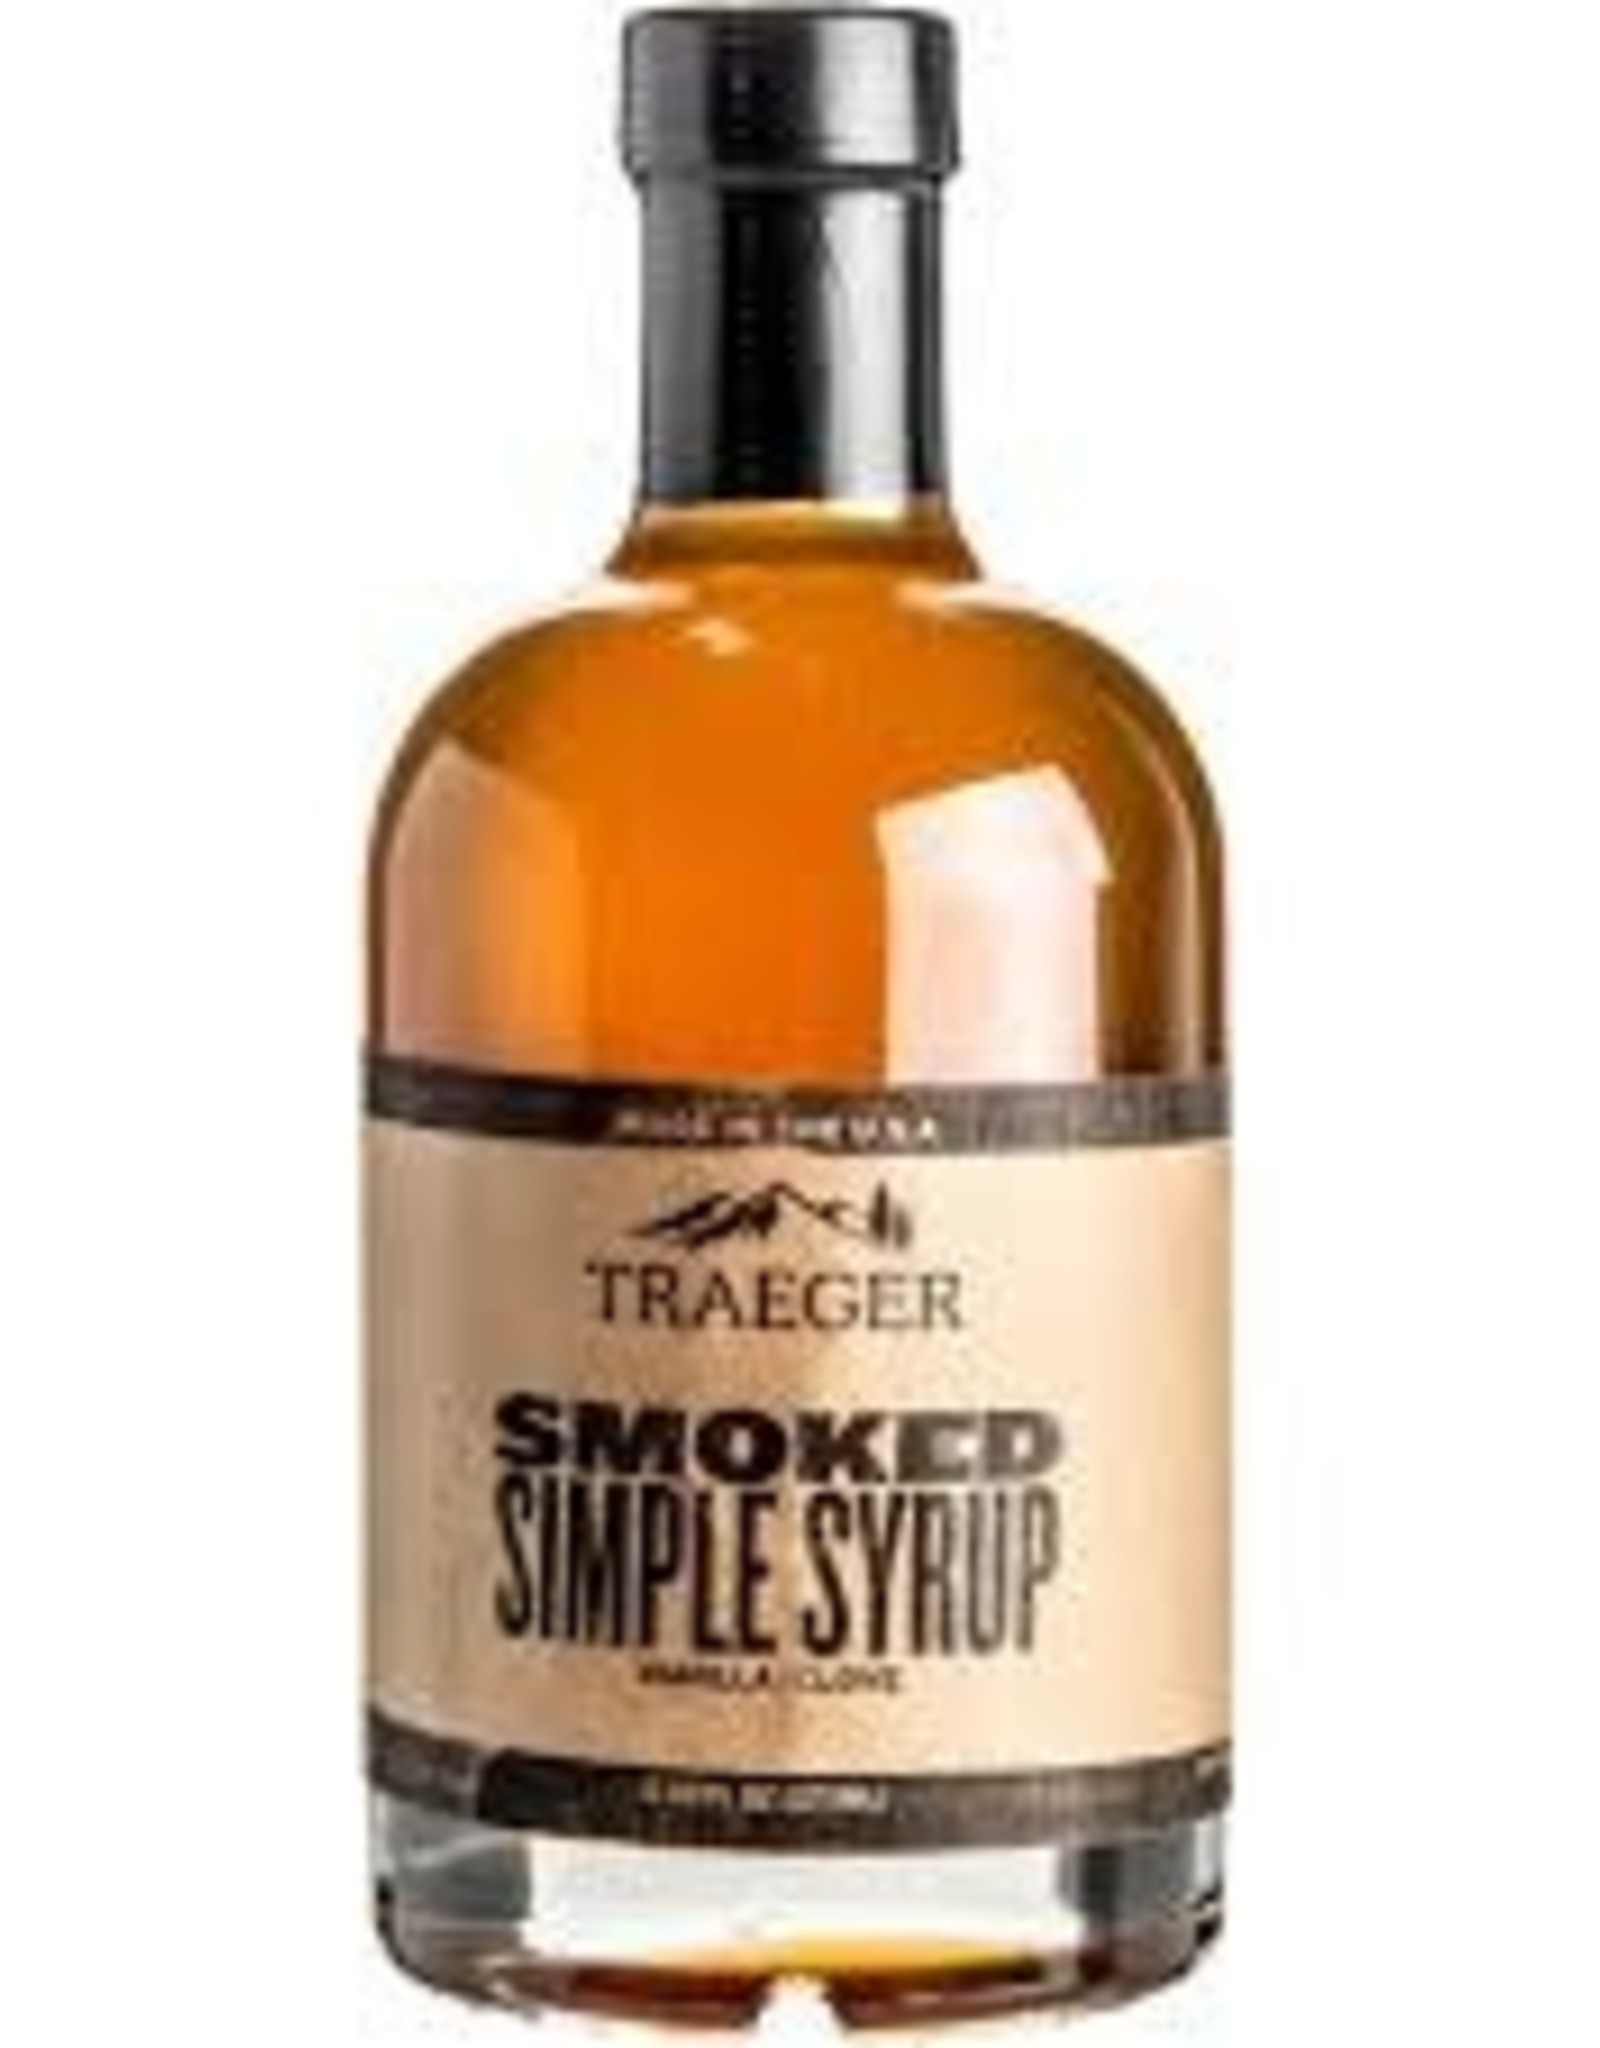 Traeger Traeger Smoked Simple Syrup 12oz - MIX001